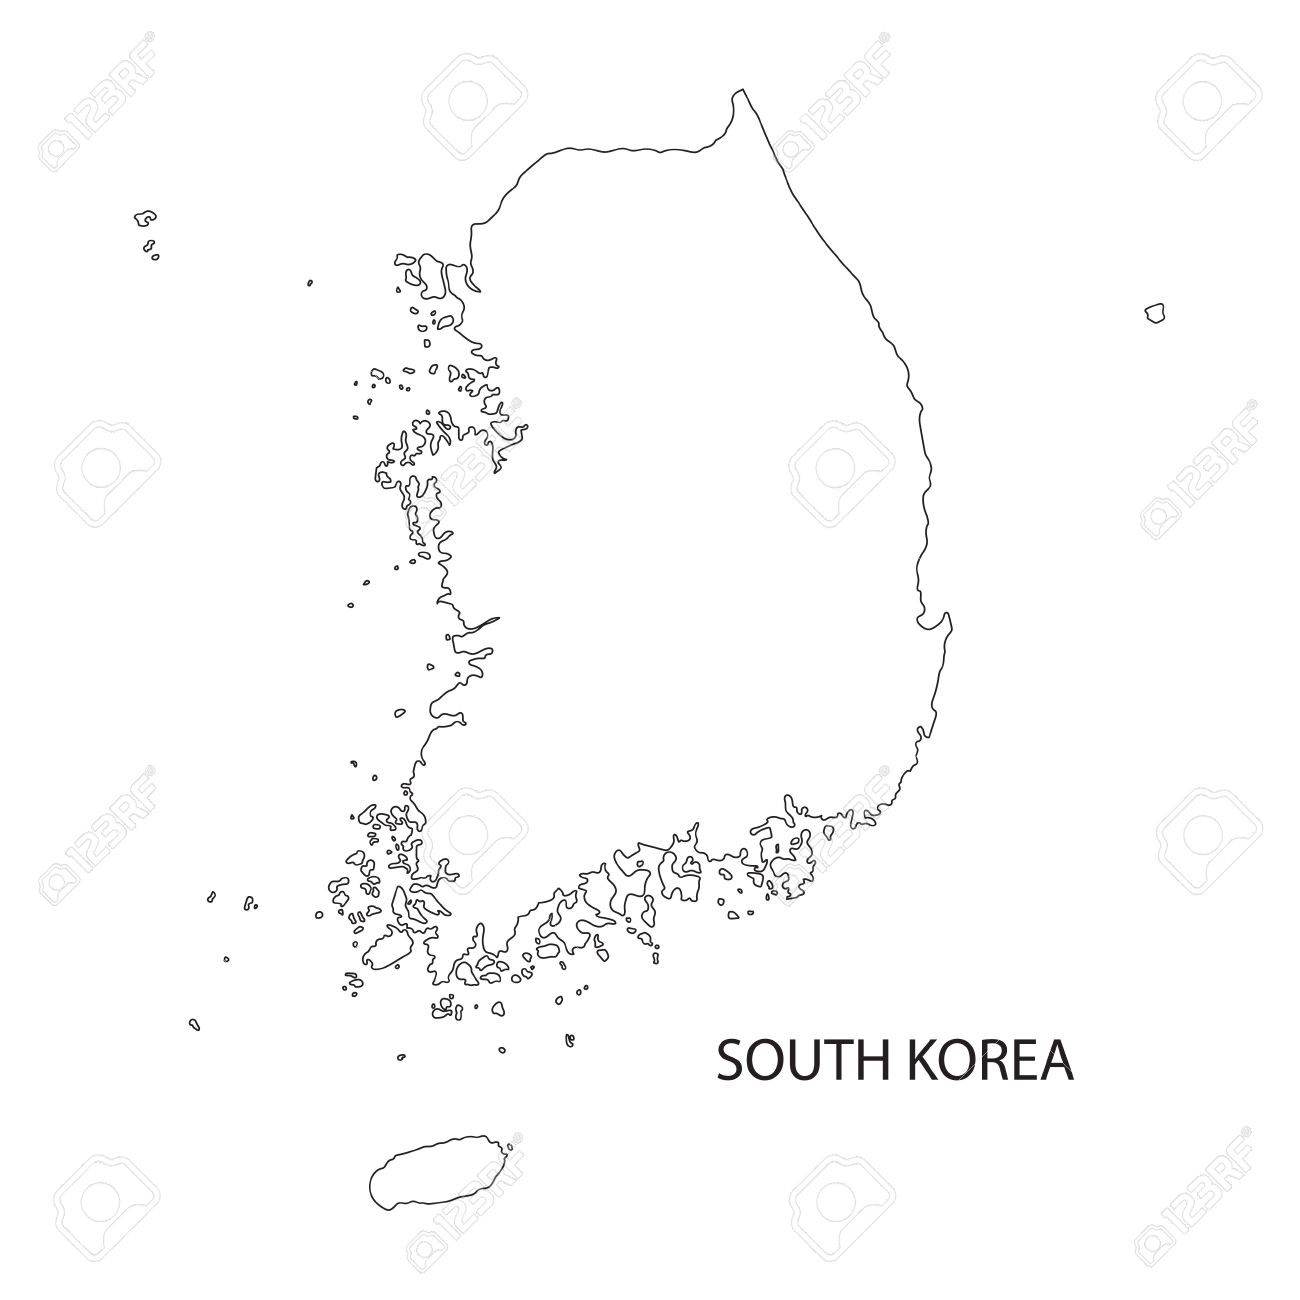 Outline Map Of South Korea Royalty Free Cliparts Vectors And - Outline map of